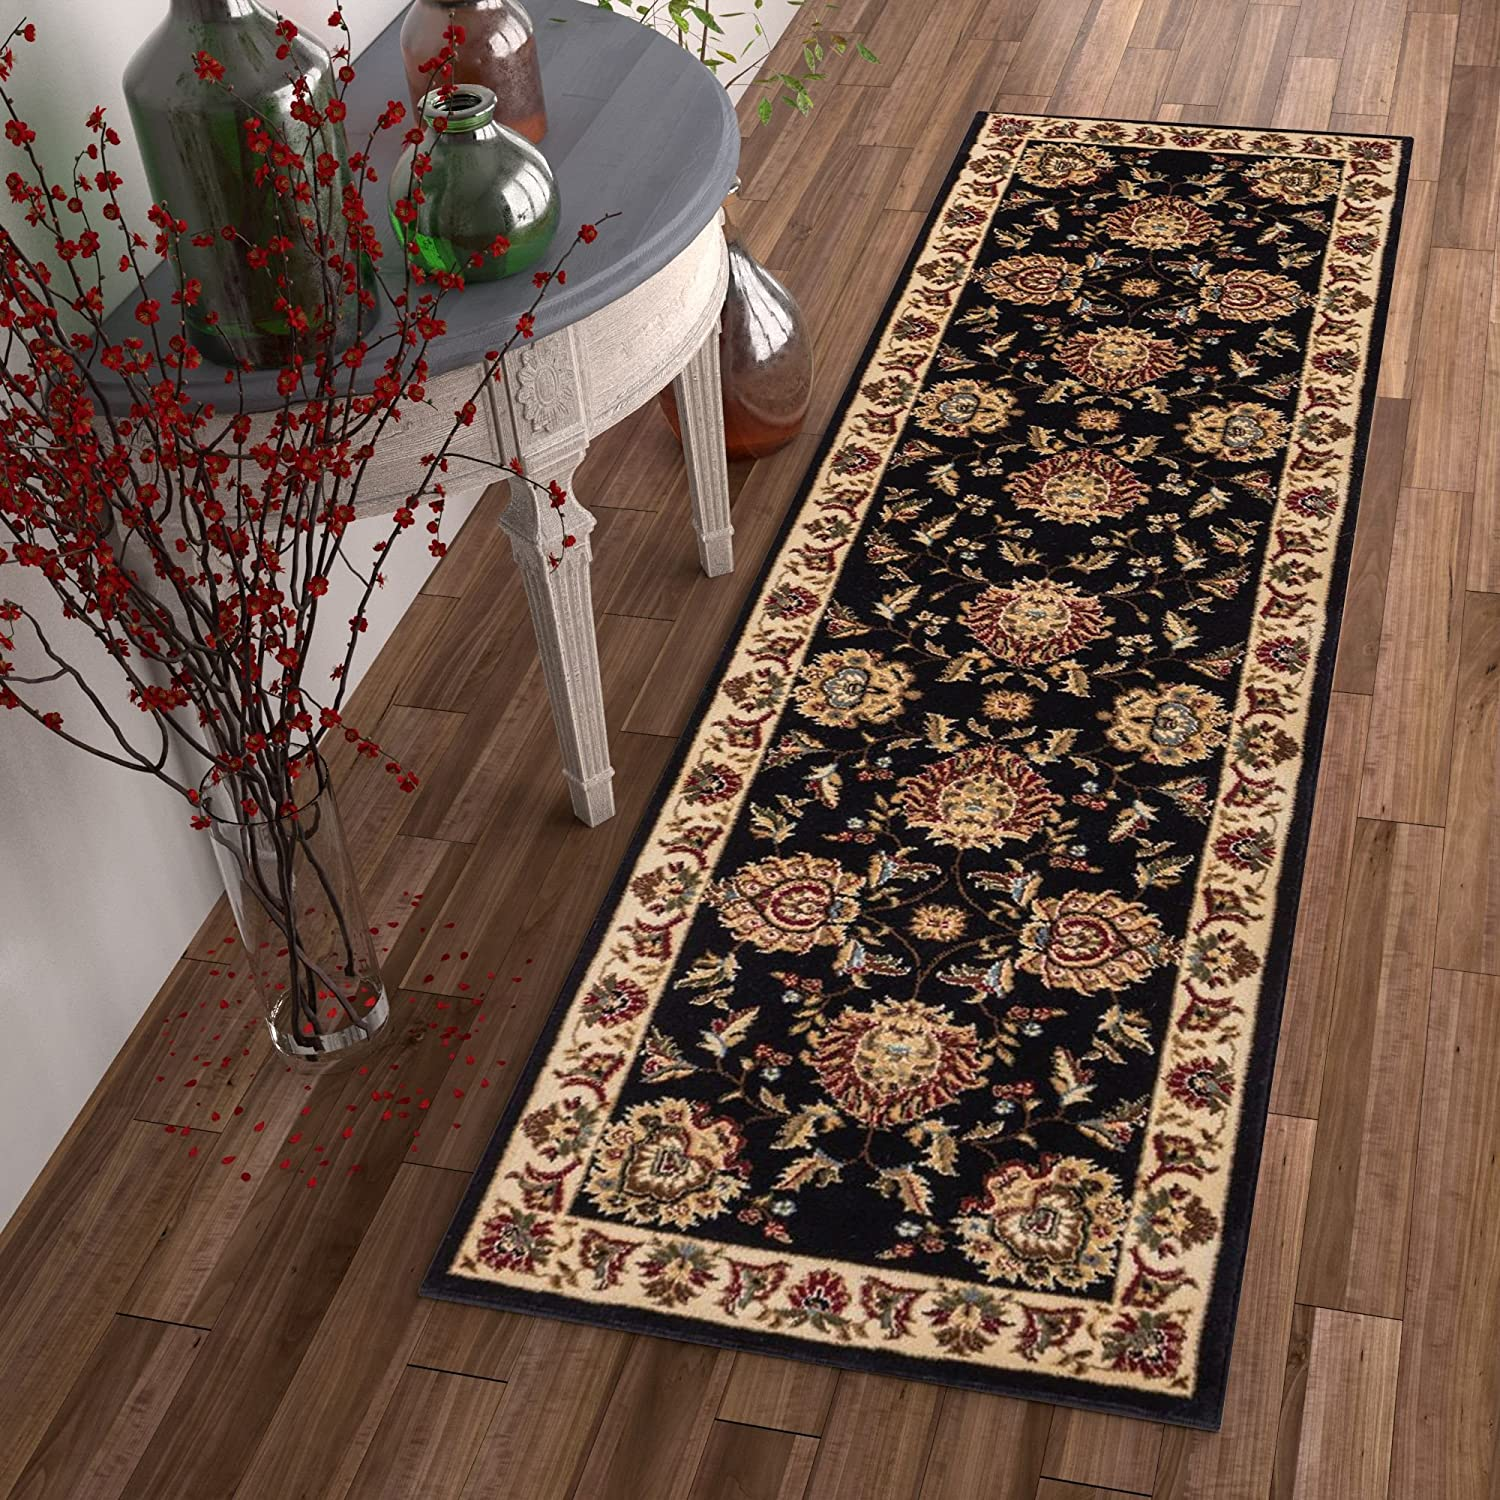 Well Woven Timeless Abbasi Black Traditional Area Rug 2'3